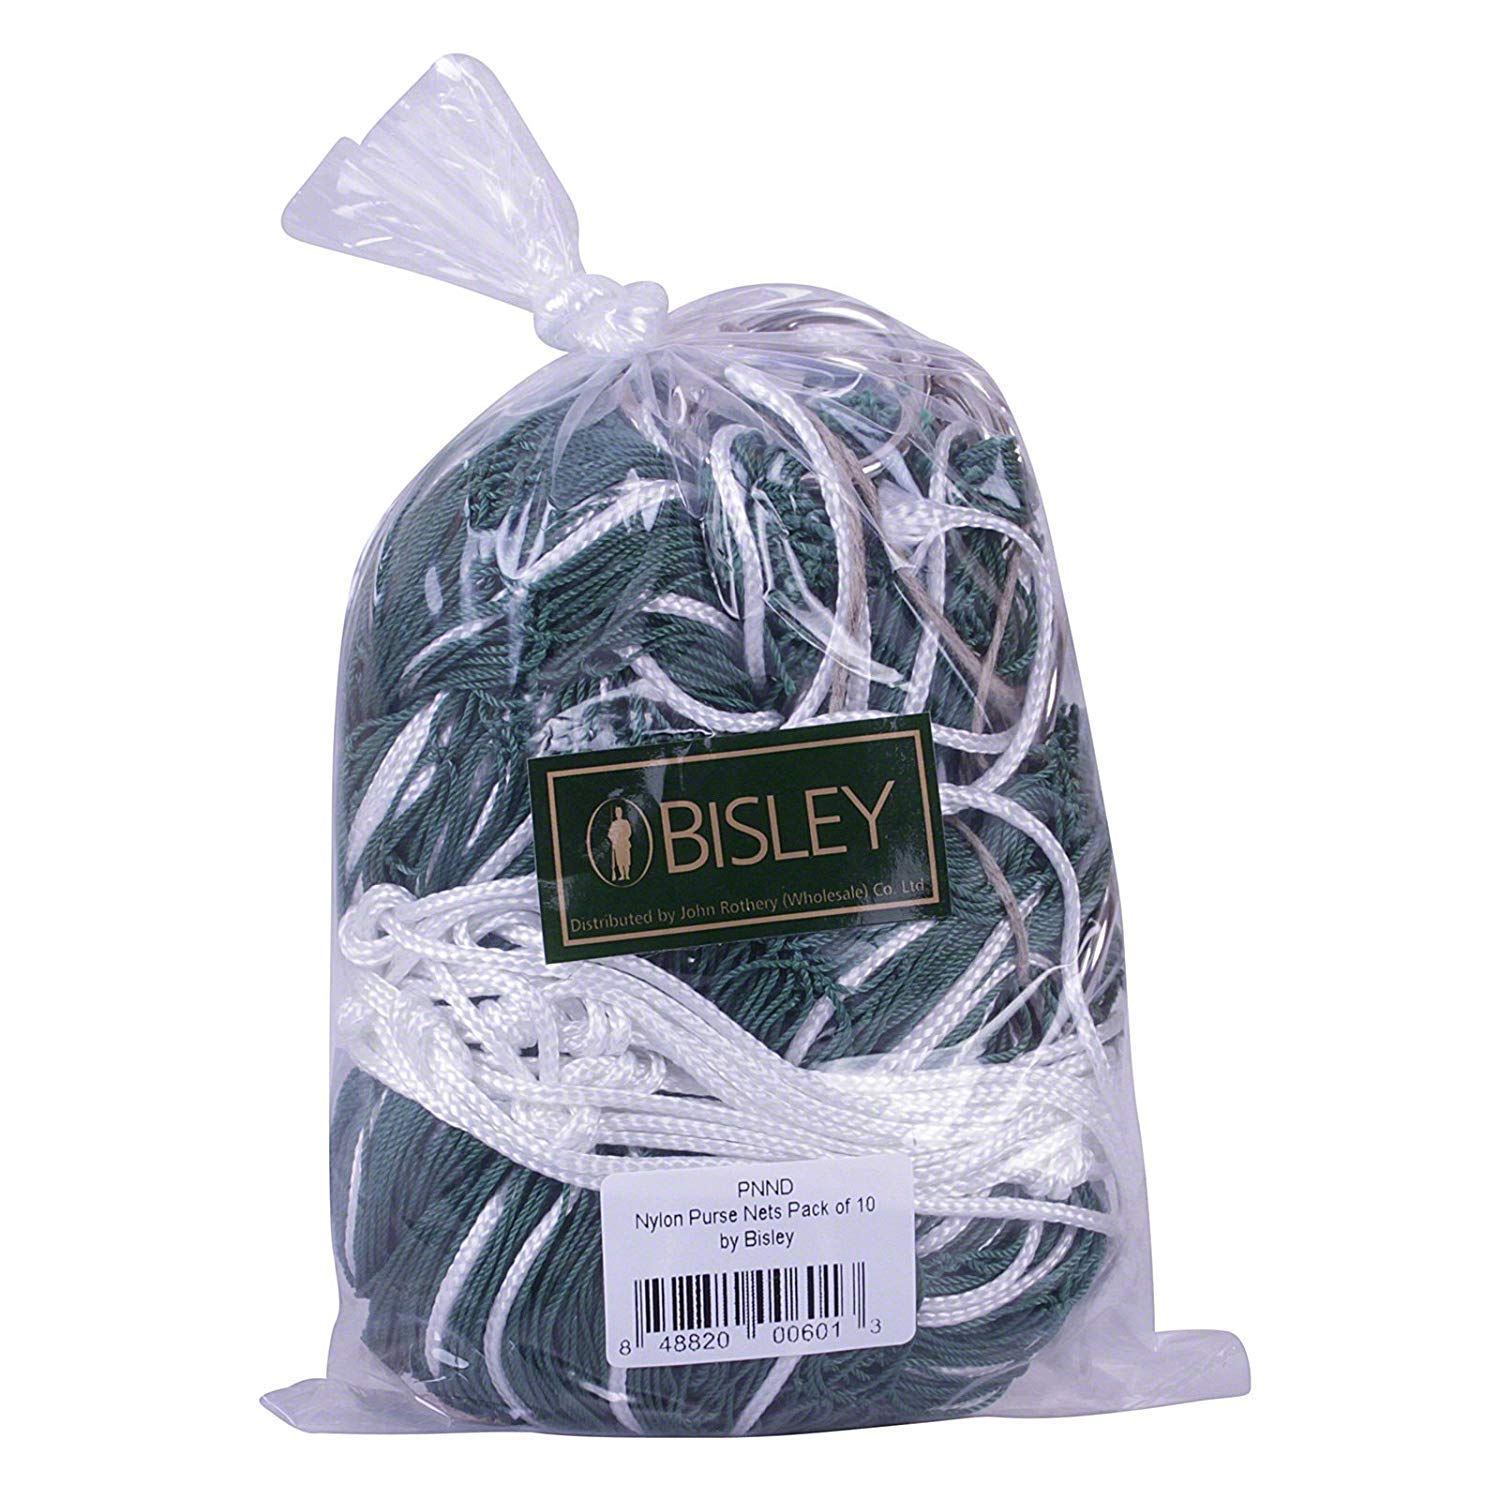 Pack de 10 Bislaey Rabbit Redes nylon ferreteria: Amazon.es ...